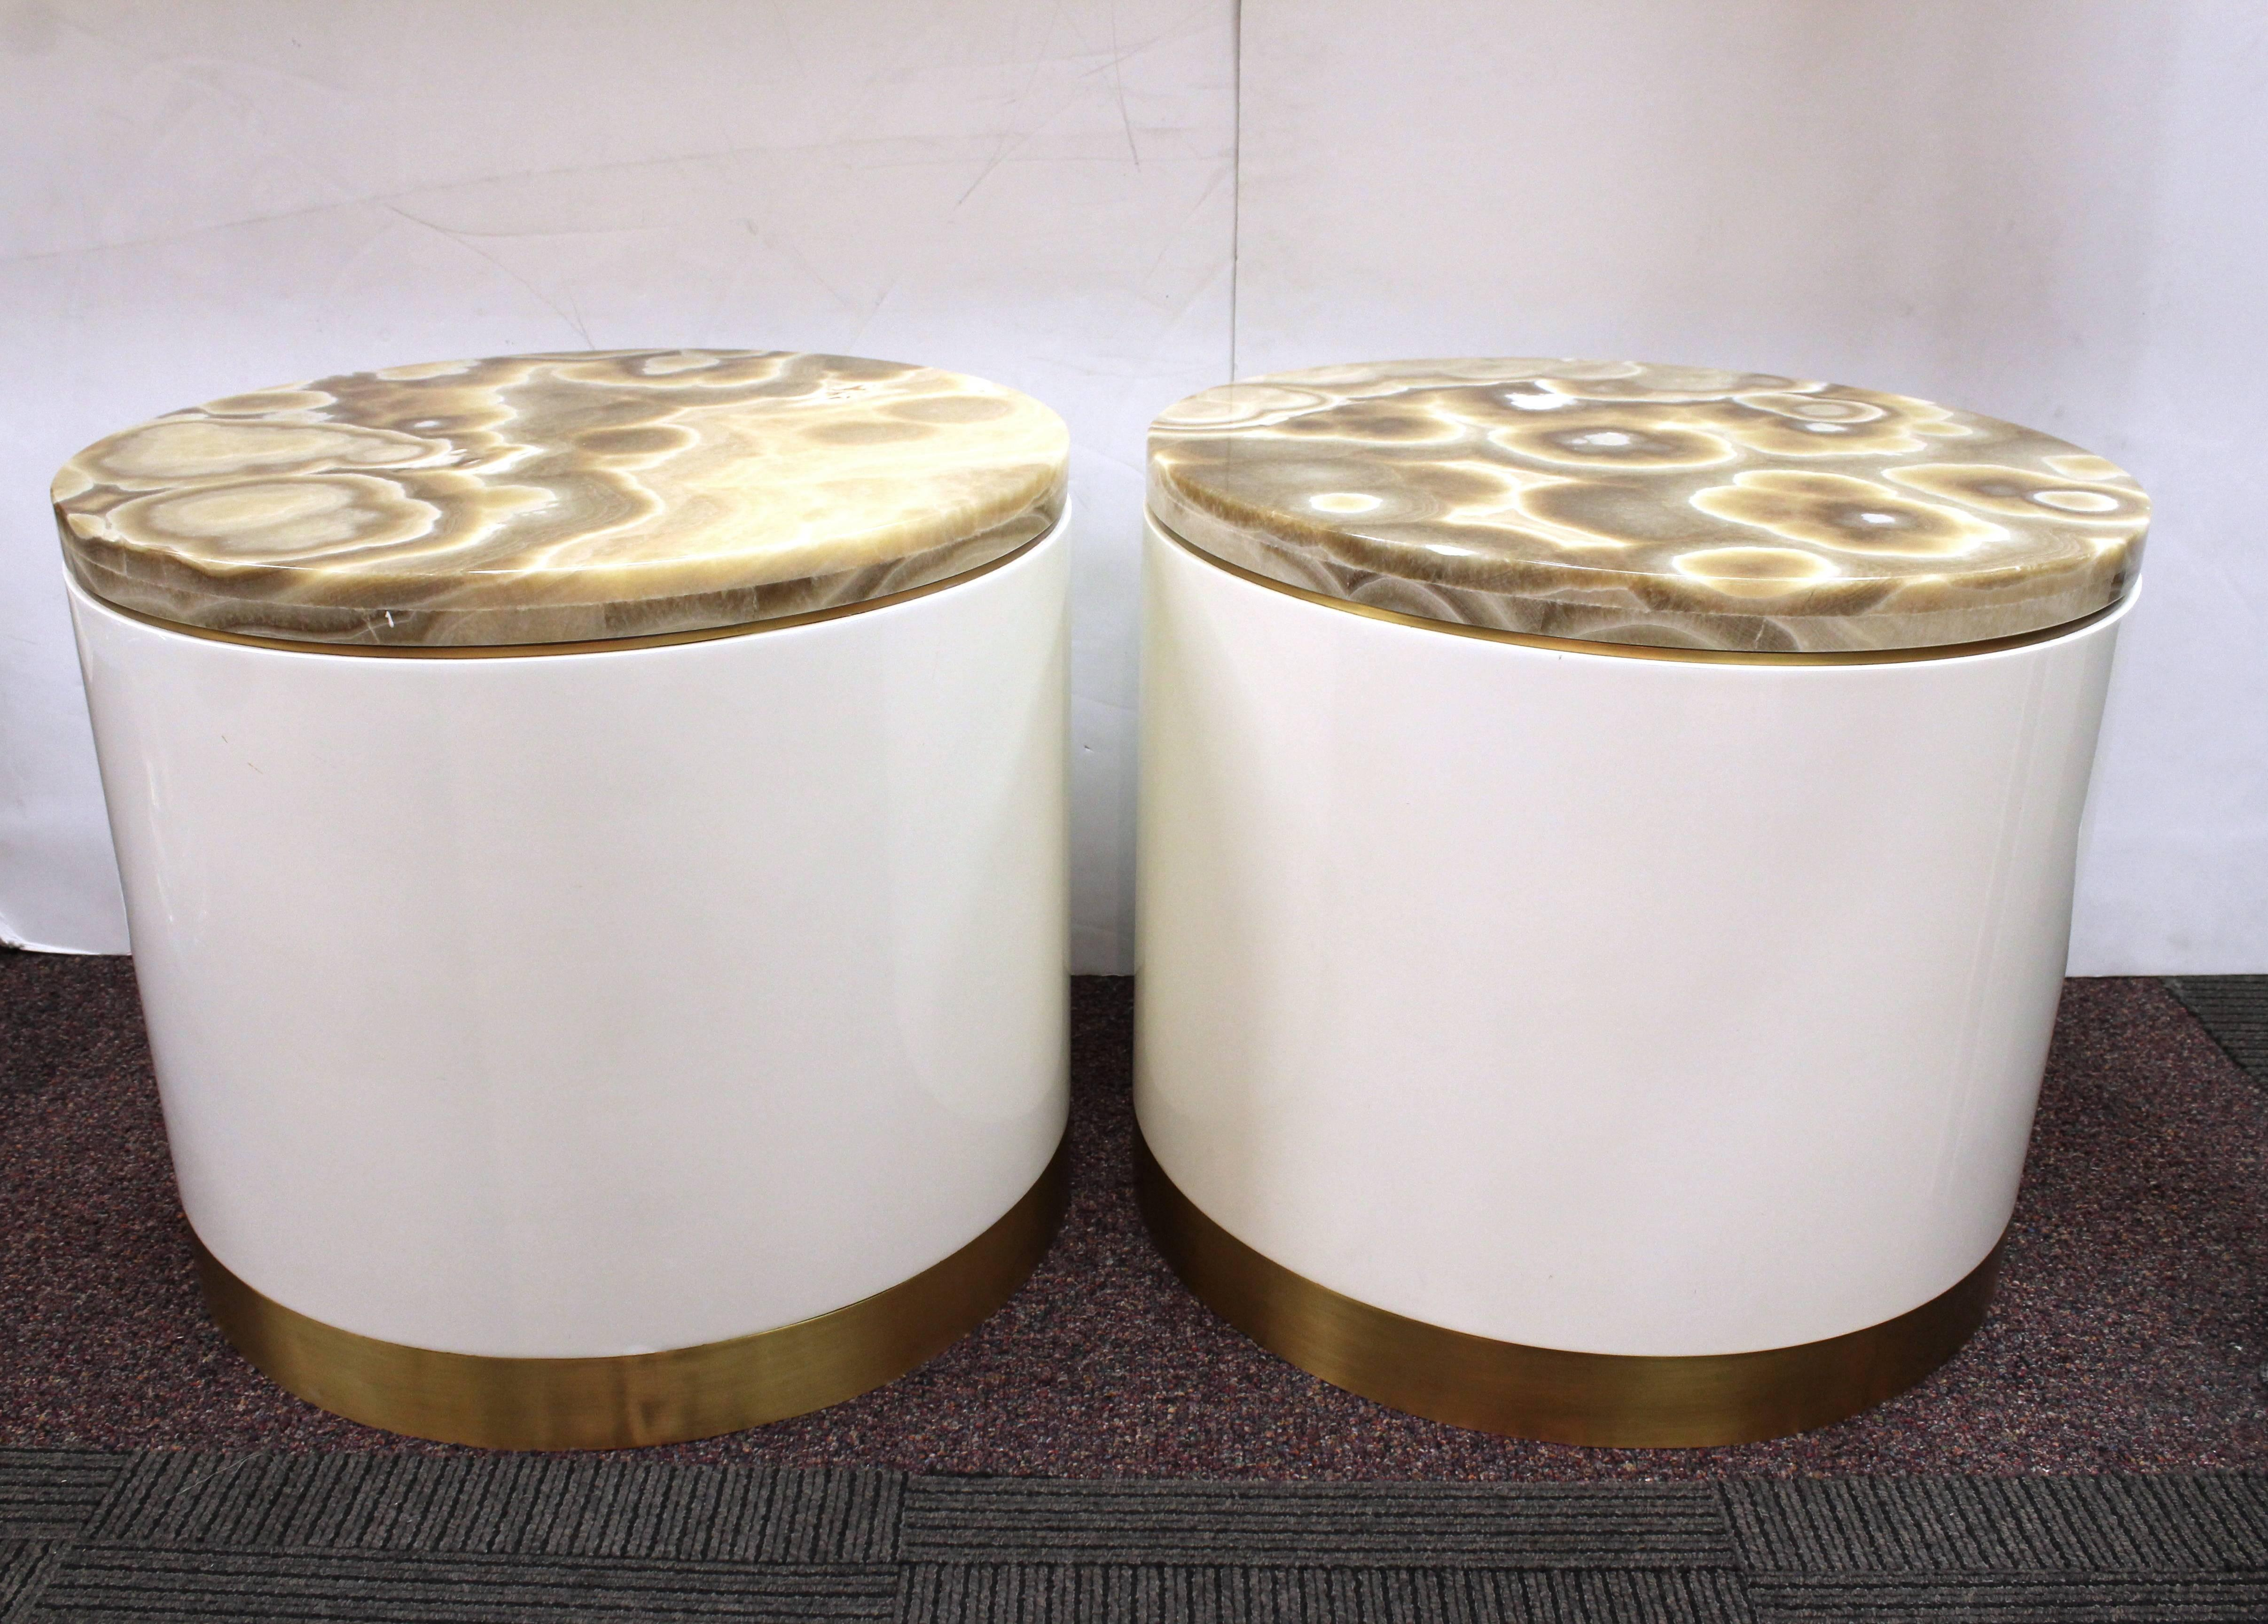 decoration metal drum accent table pair mid century modern white tables with circular marble tops side round top coffee target nate berkus rug lamps contemporary design red patio